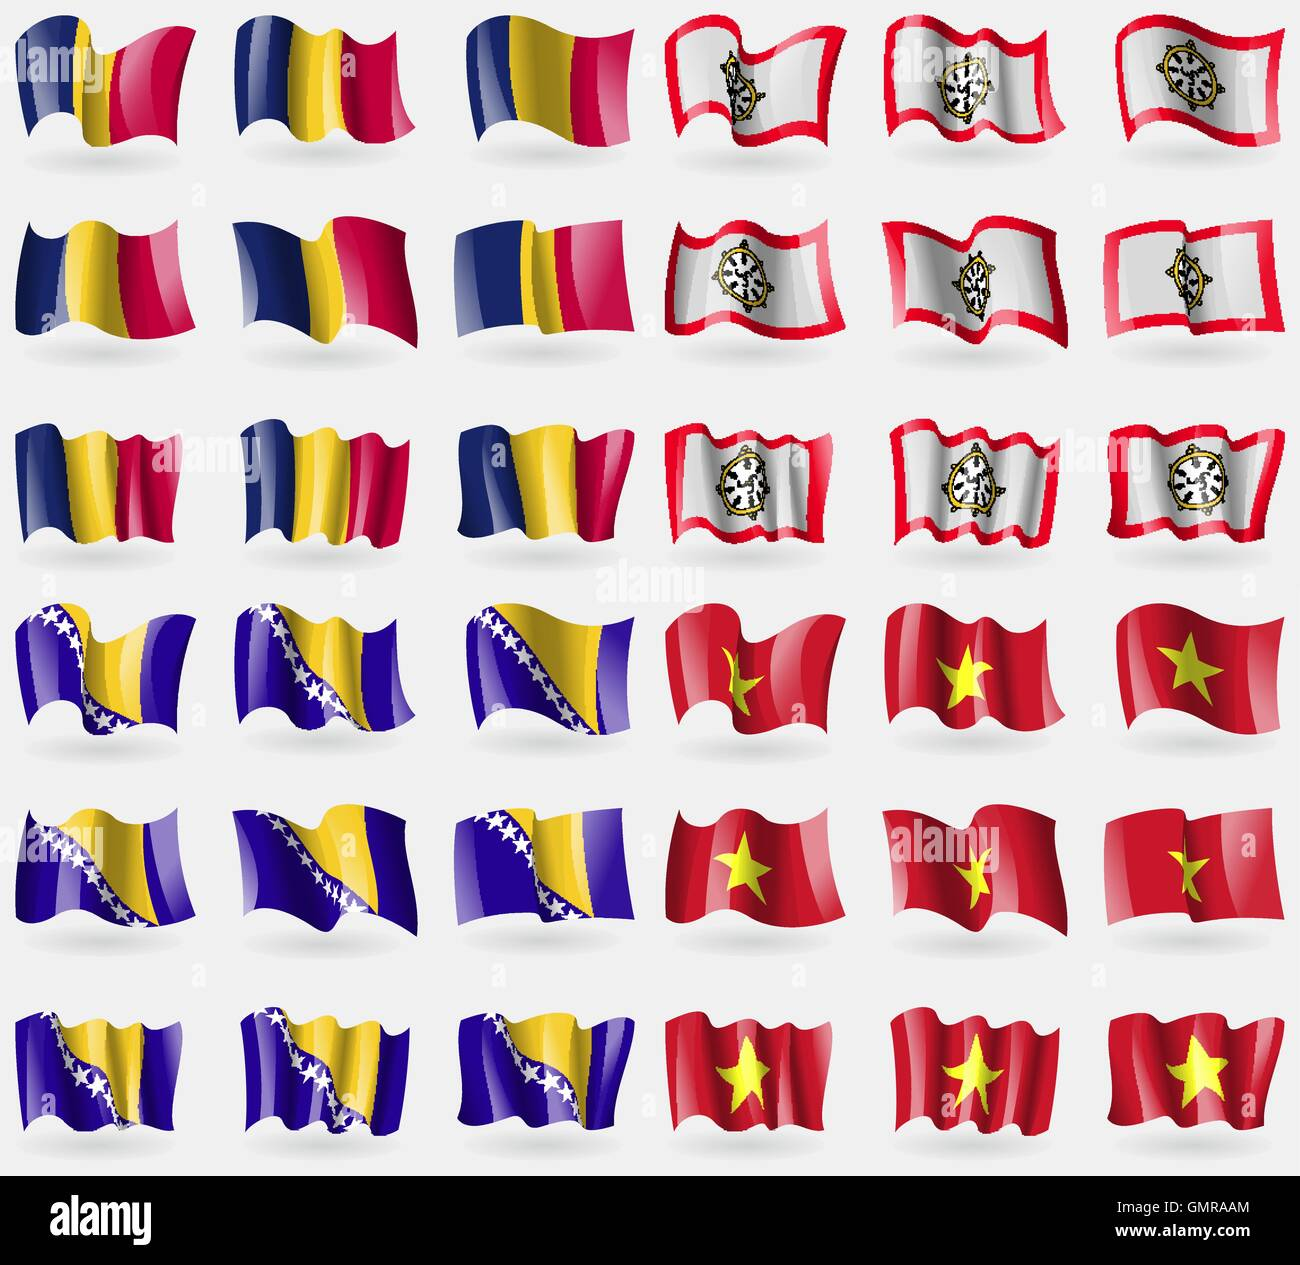 Chad, Sikkim, Bosnia and Herzegovina, Vietnam. Set of 36 flags of the countries of the world. Vector - Stock Vector